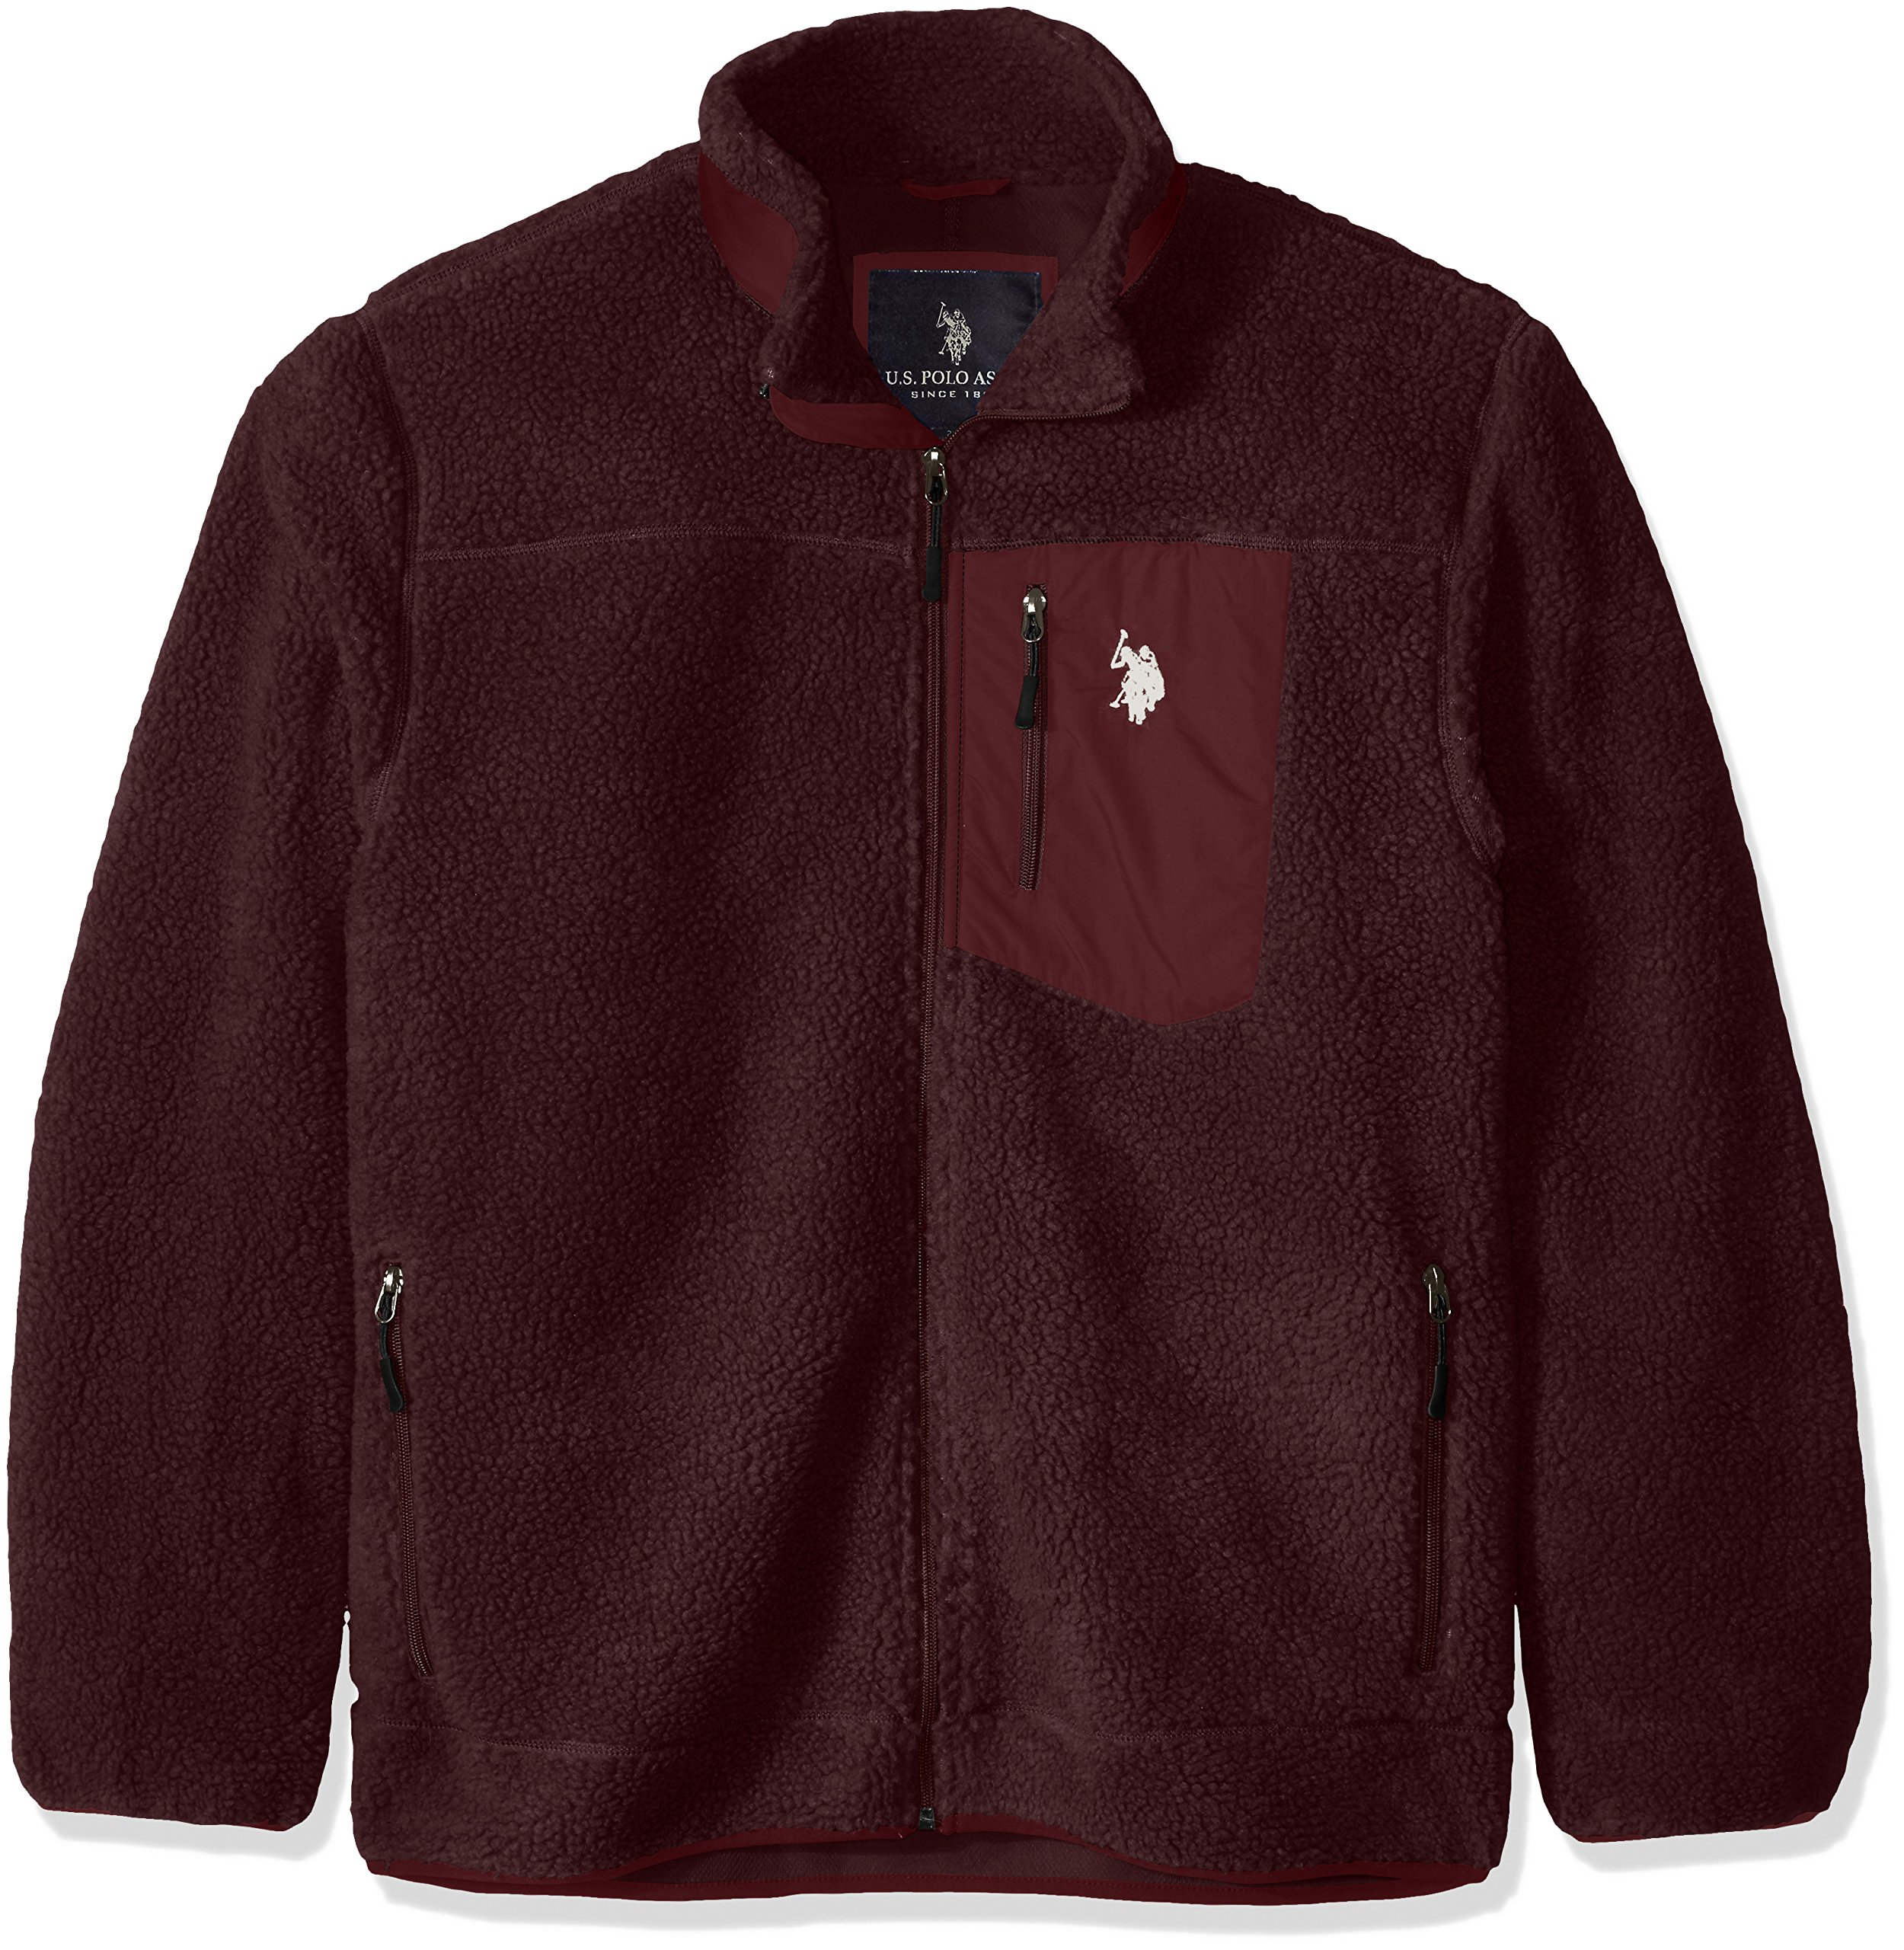 U.S. Polo Assn. Men's Faux Sherpa Jacket, East Burgundy, X-Large